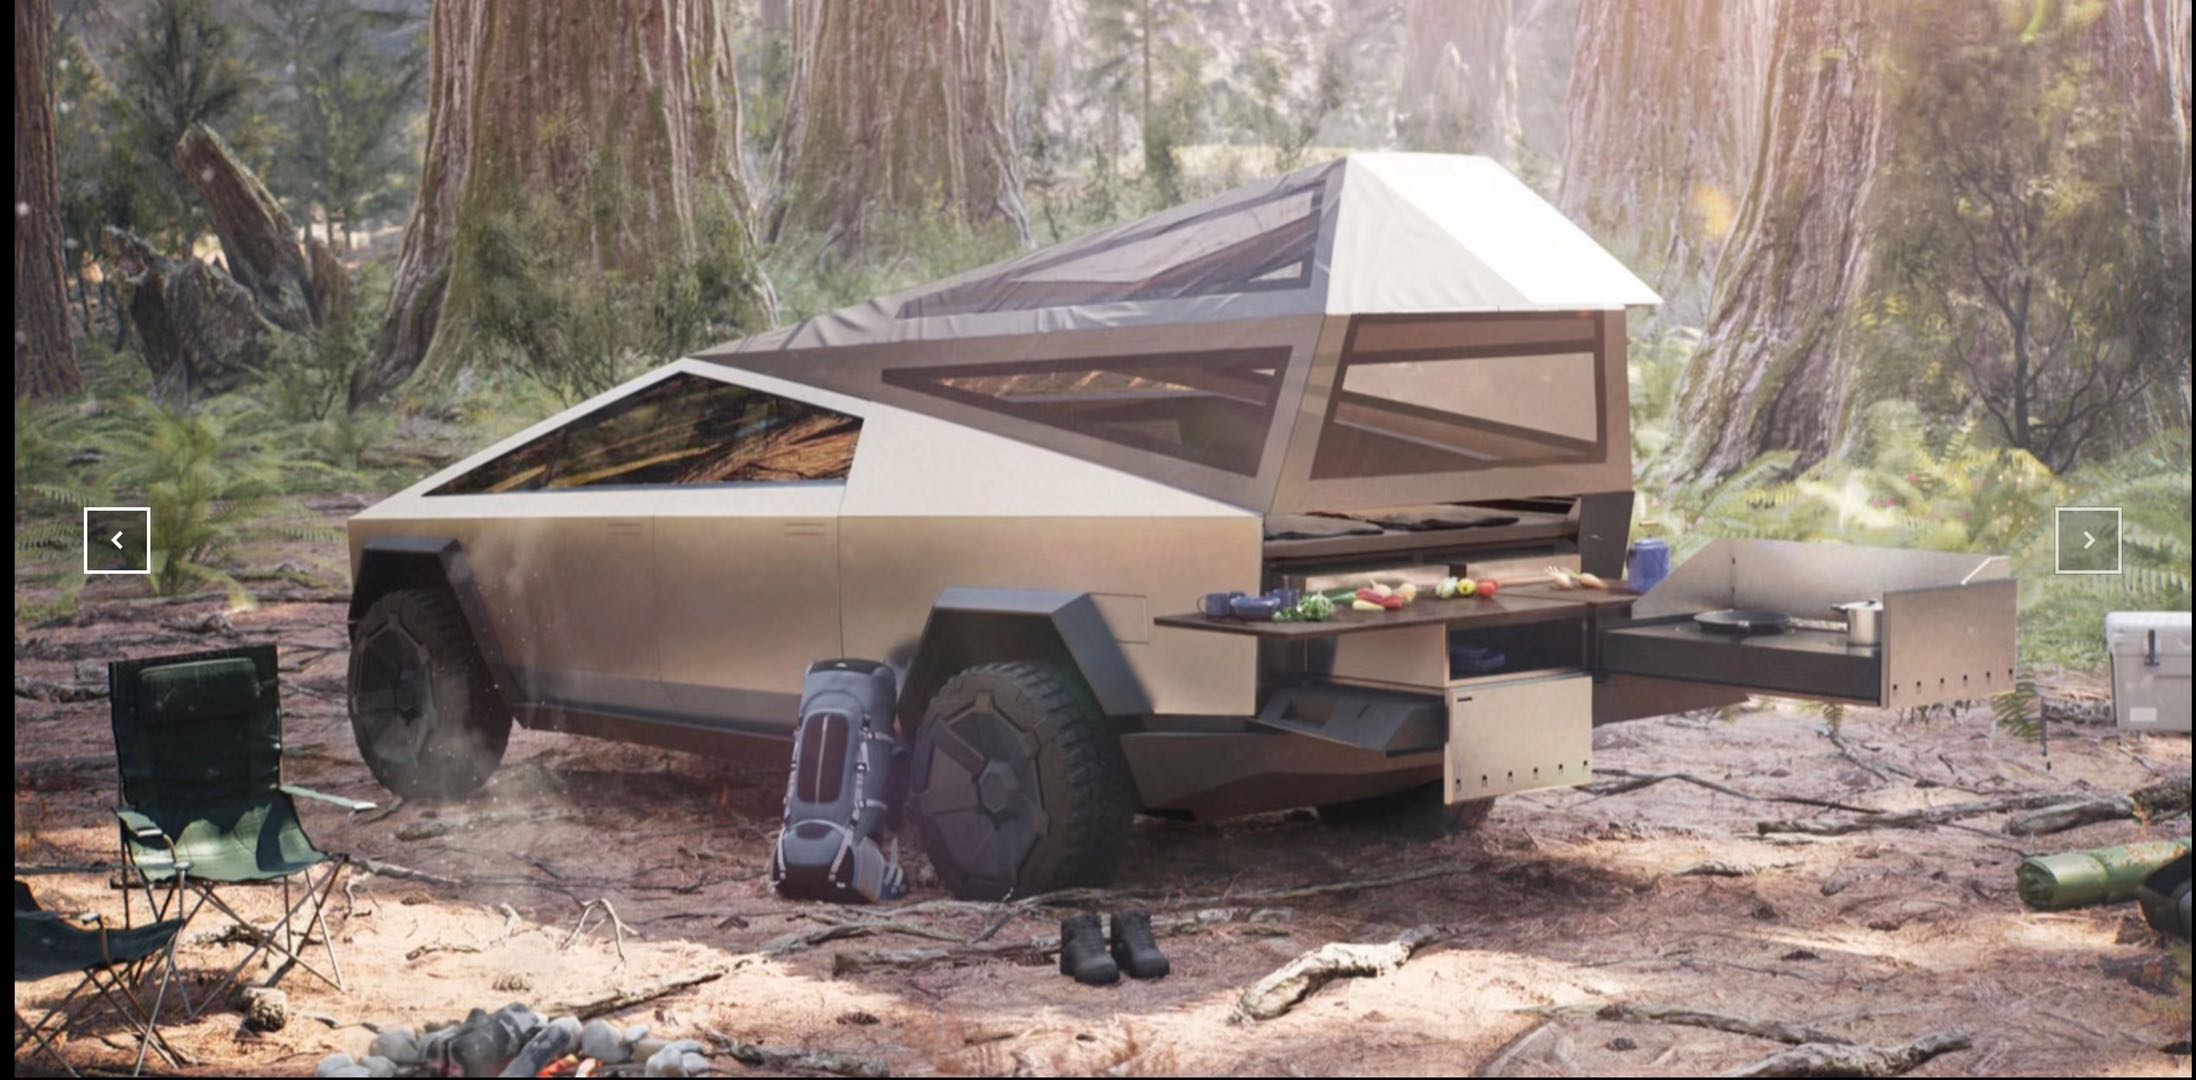 A rear view of a futuristic truck in a light beige with a pop-up camping tent off the back and a slide-out kitchen.